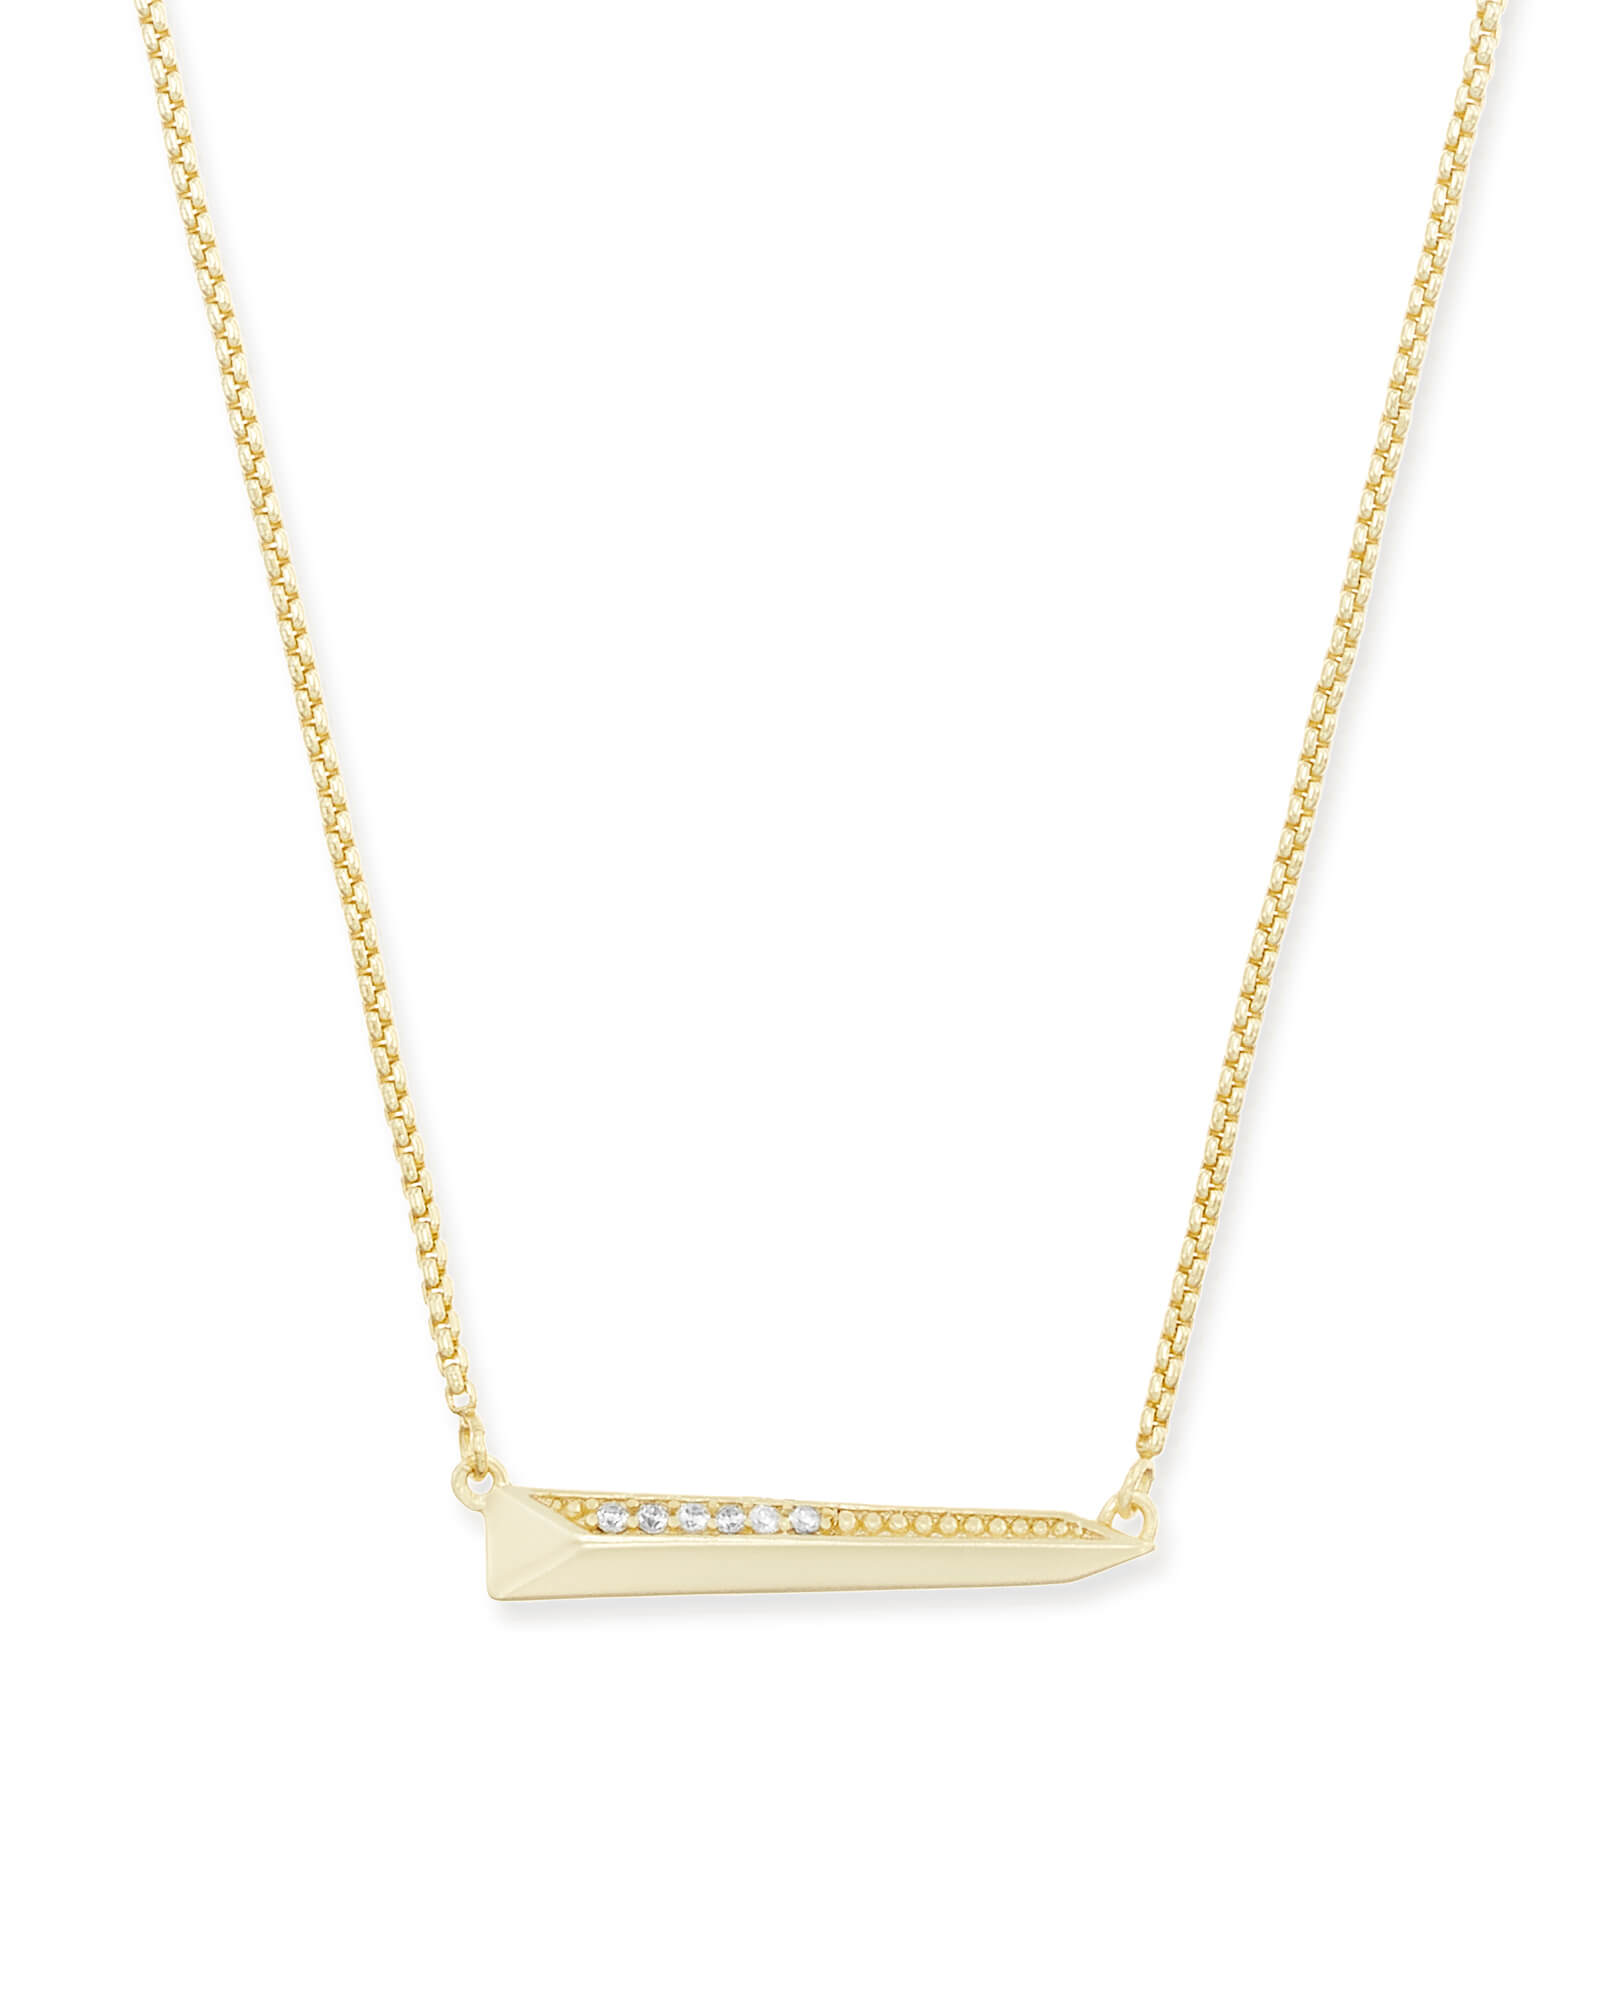 Elliot Pendant Necklace in Gold